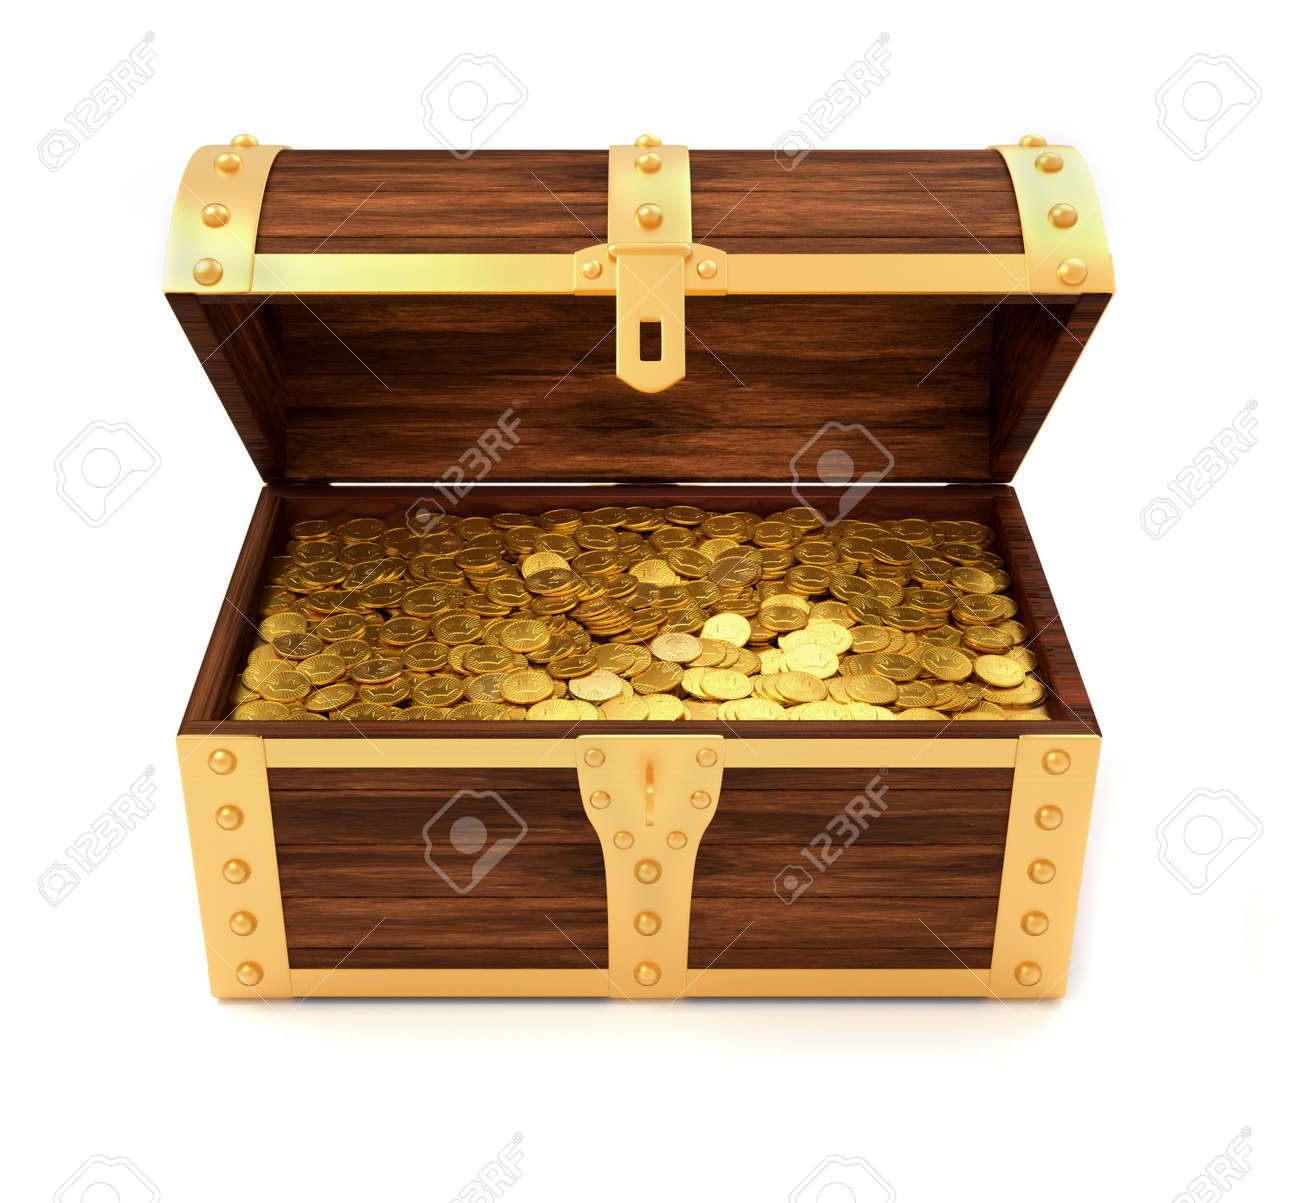 wooden treasure chest with gold coins printed with royal crown 3d render stock photo